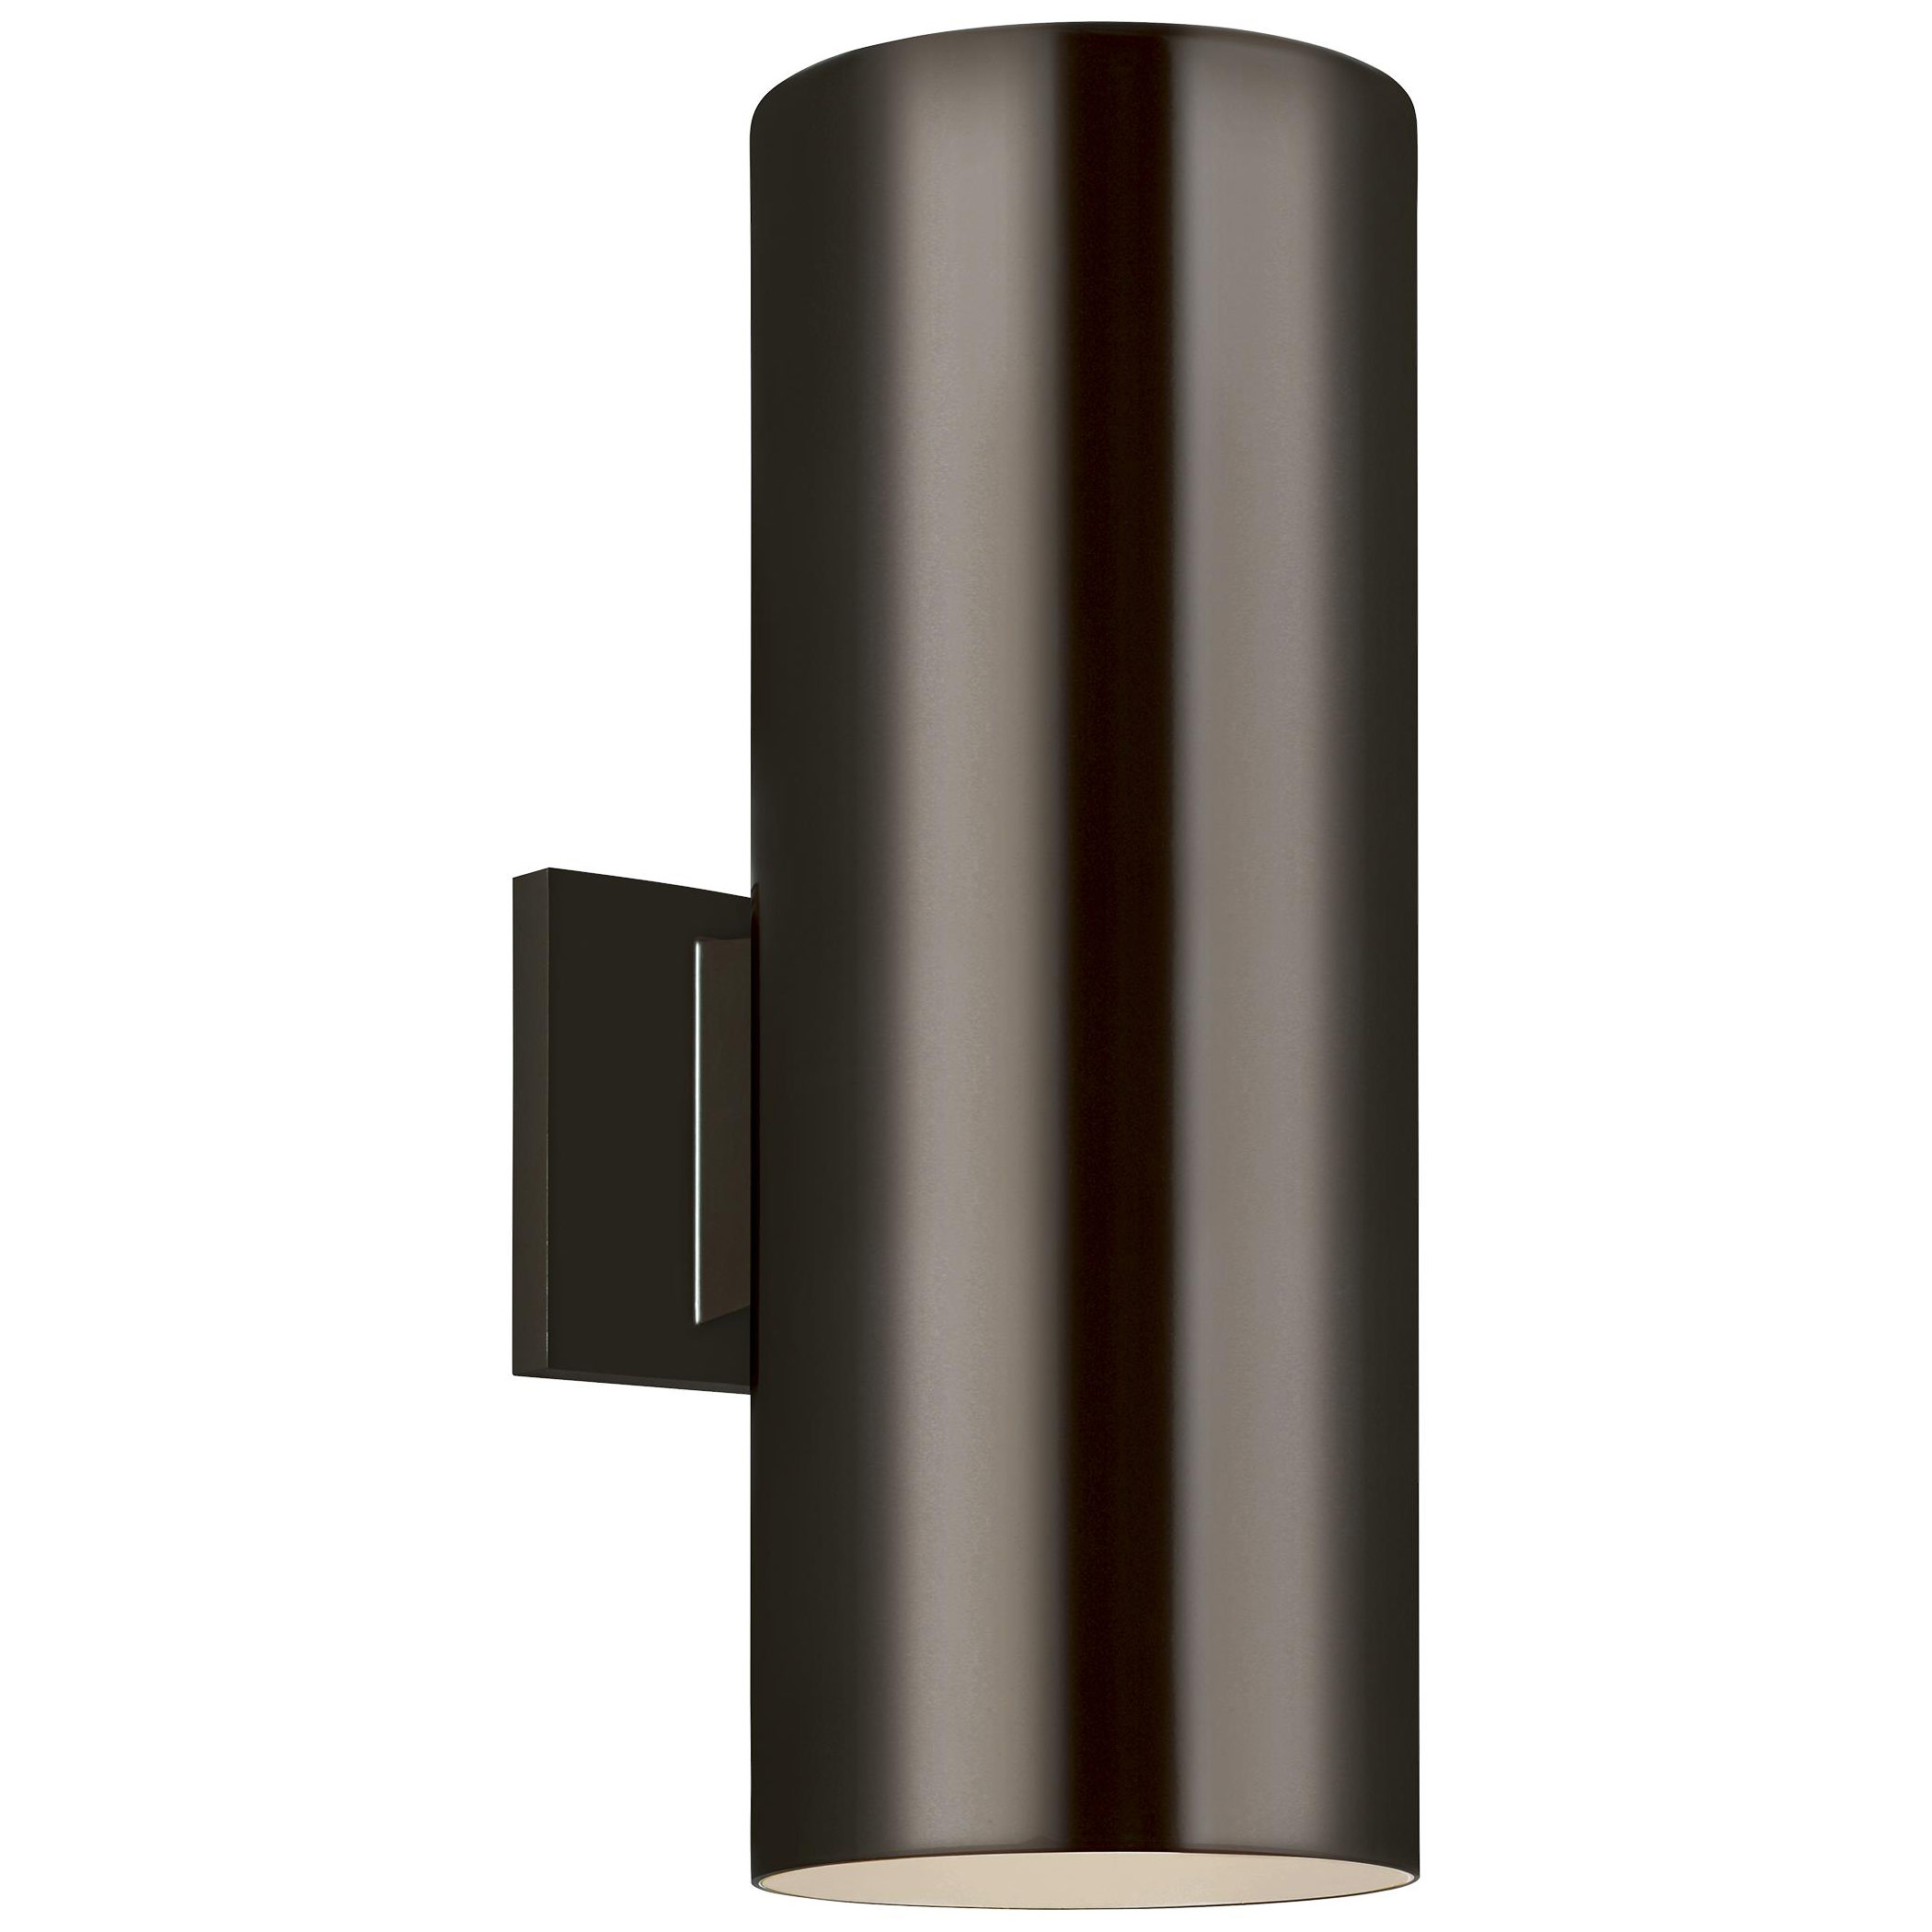 Cylinder Outdoor Up Down Wall Light By Sea Gull Lighting